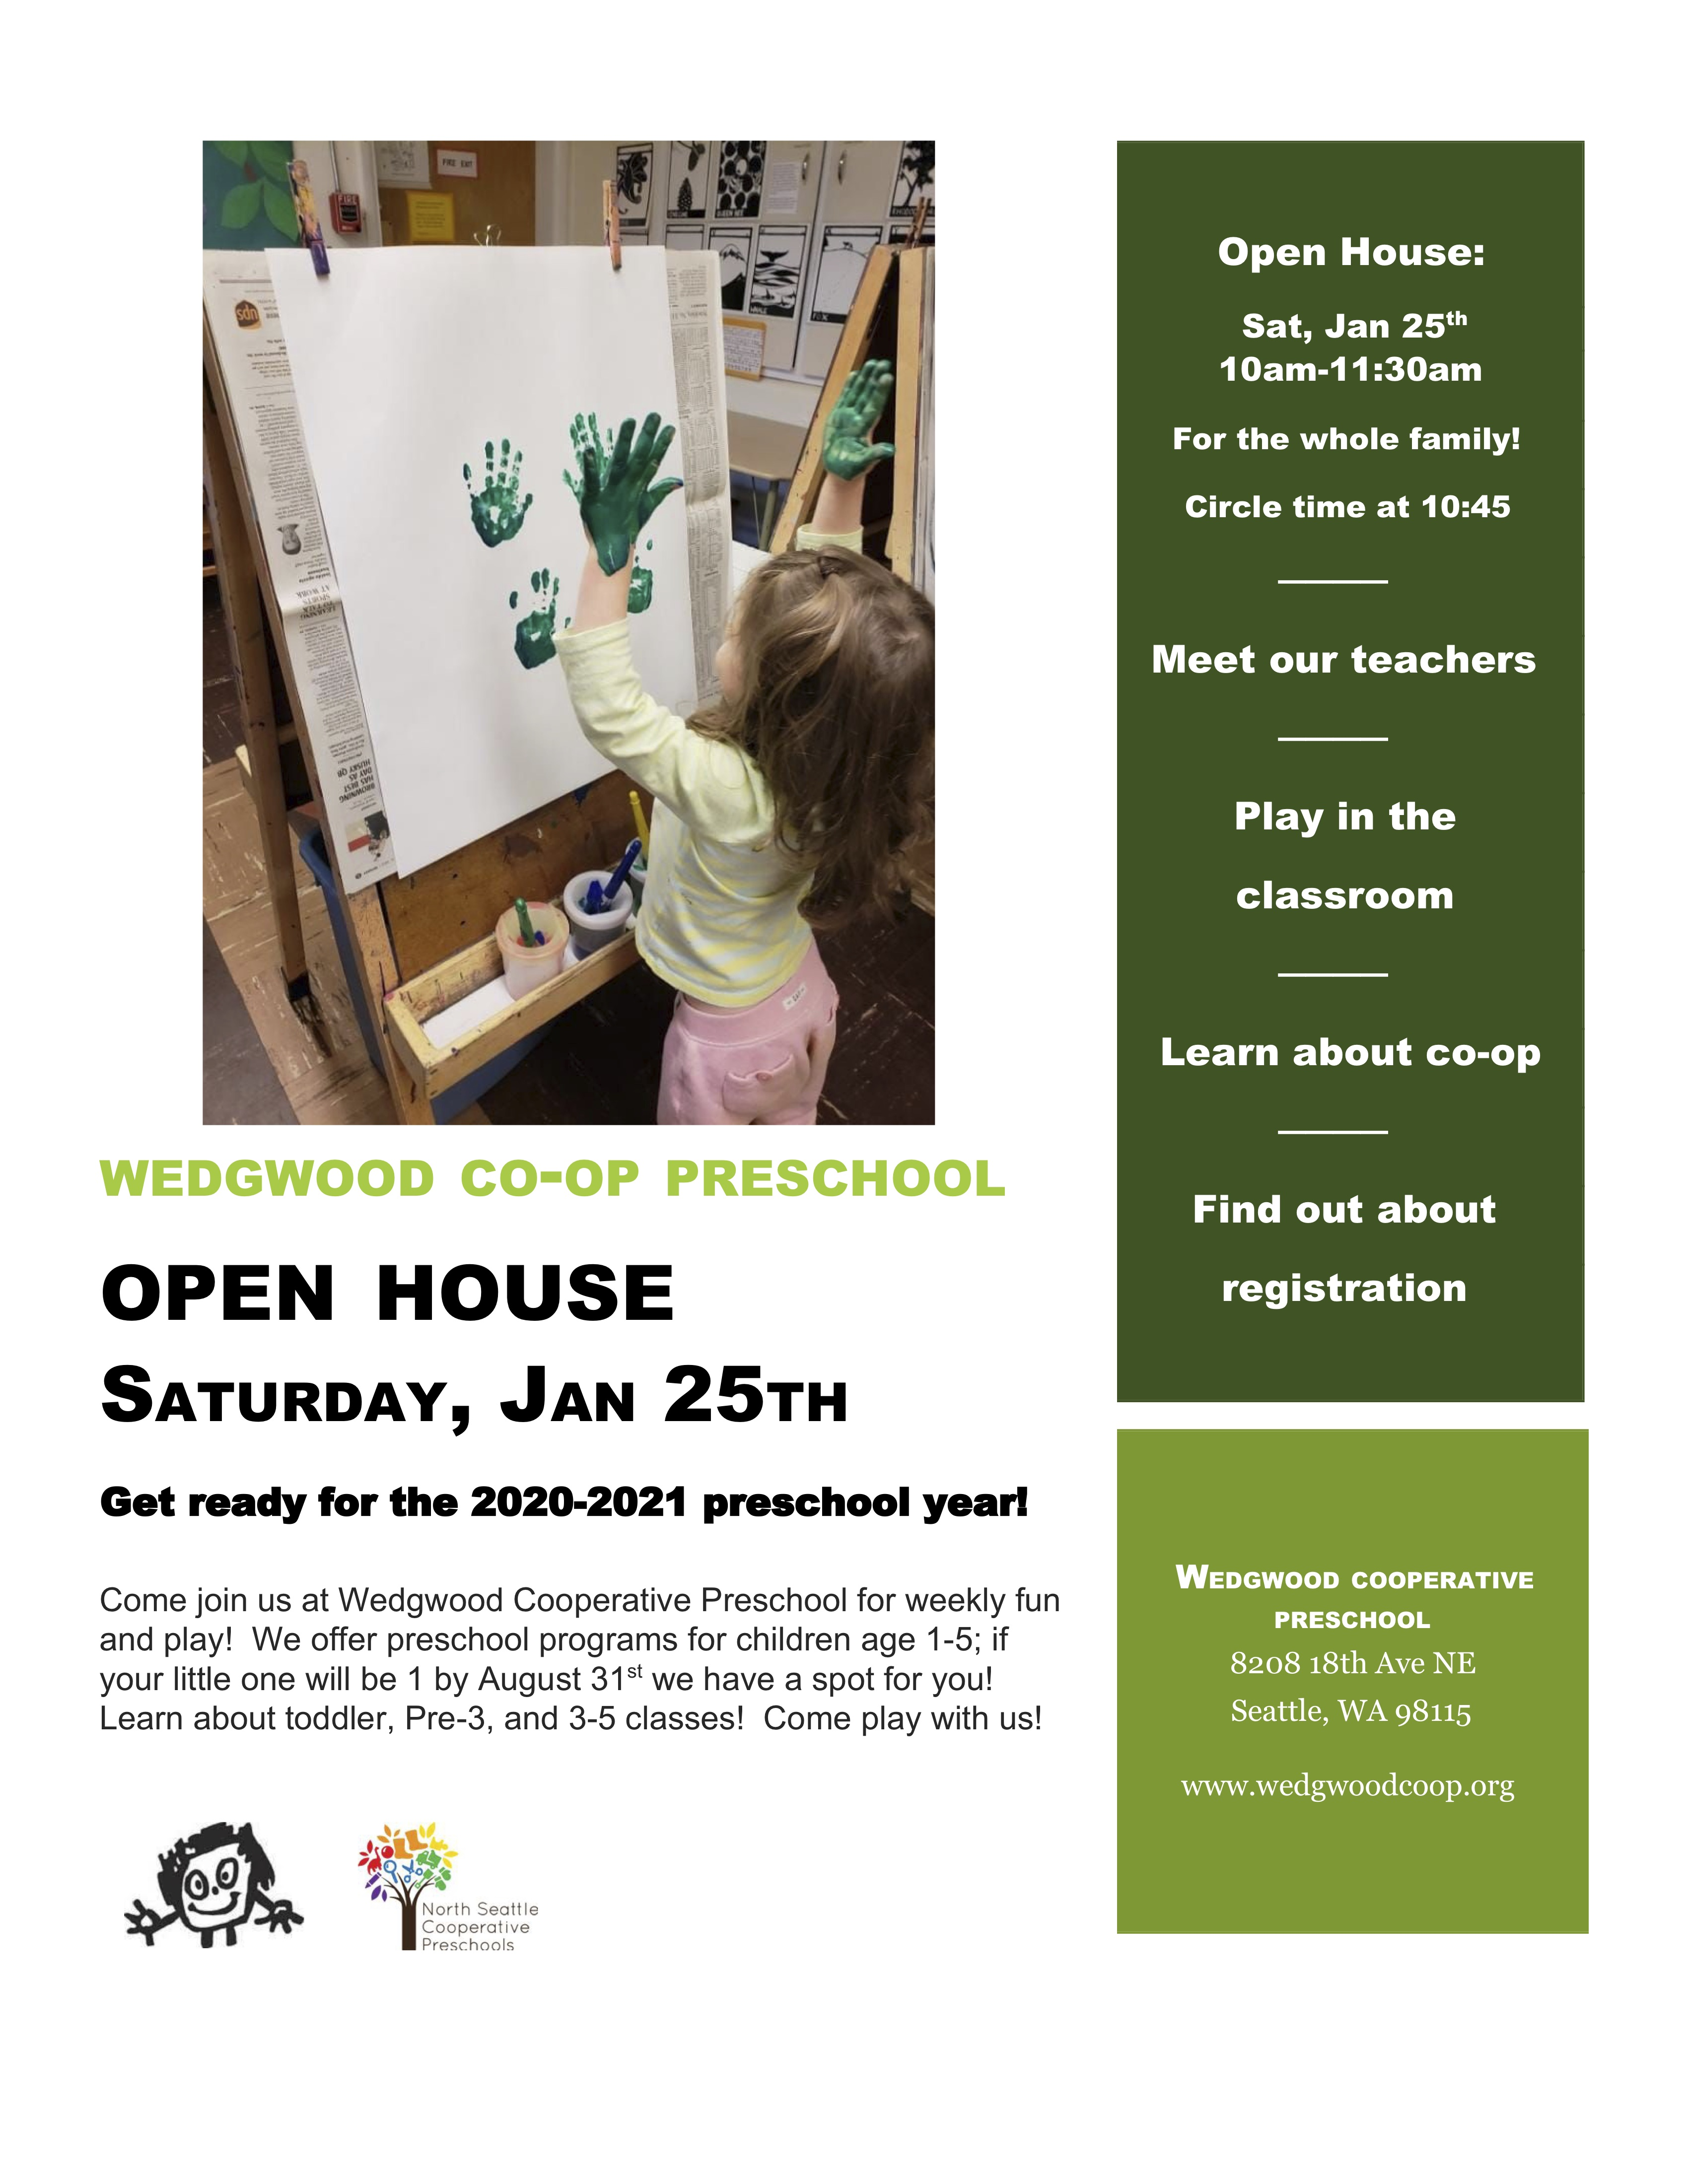 Wedgwood Cooperative Preschool Open House